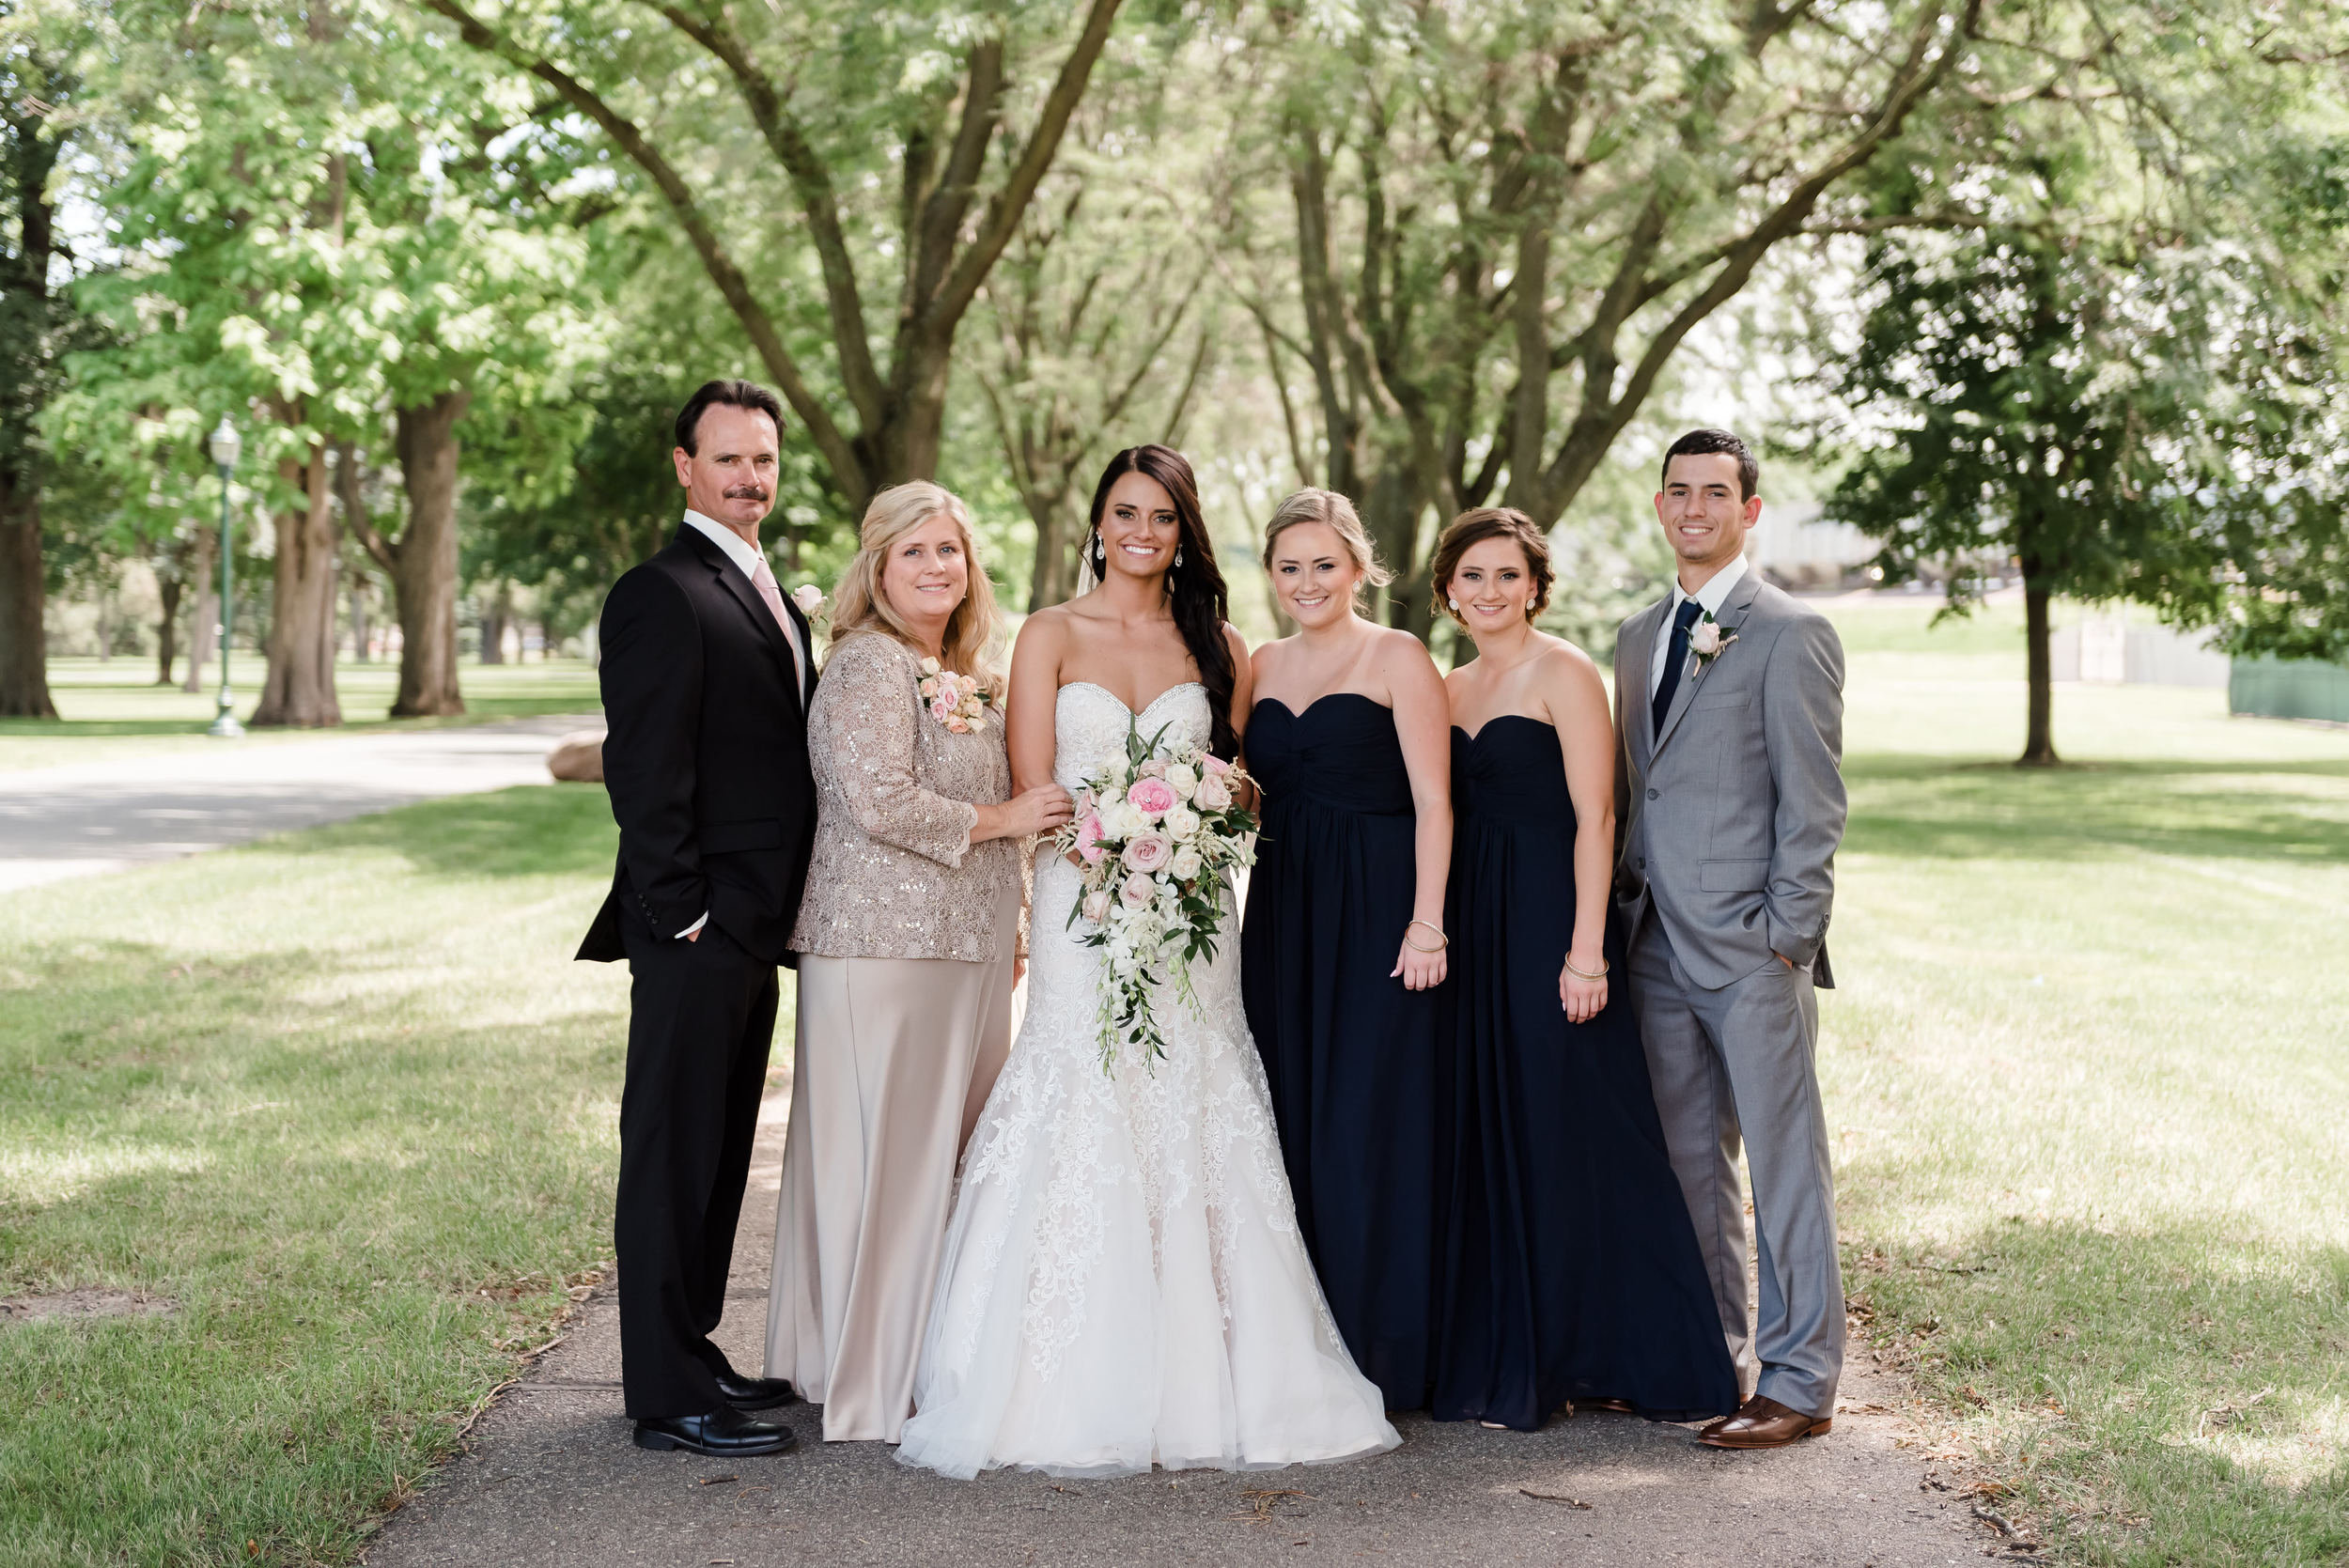 Layce and Brandon - Wedding - Bridal Party and Family - Outdoor Portraits-94.jpg